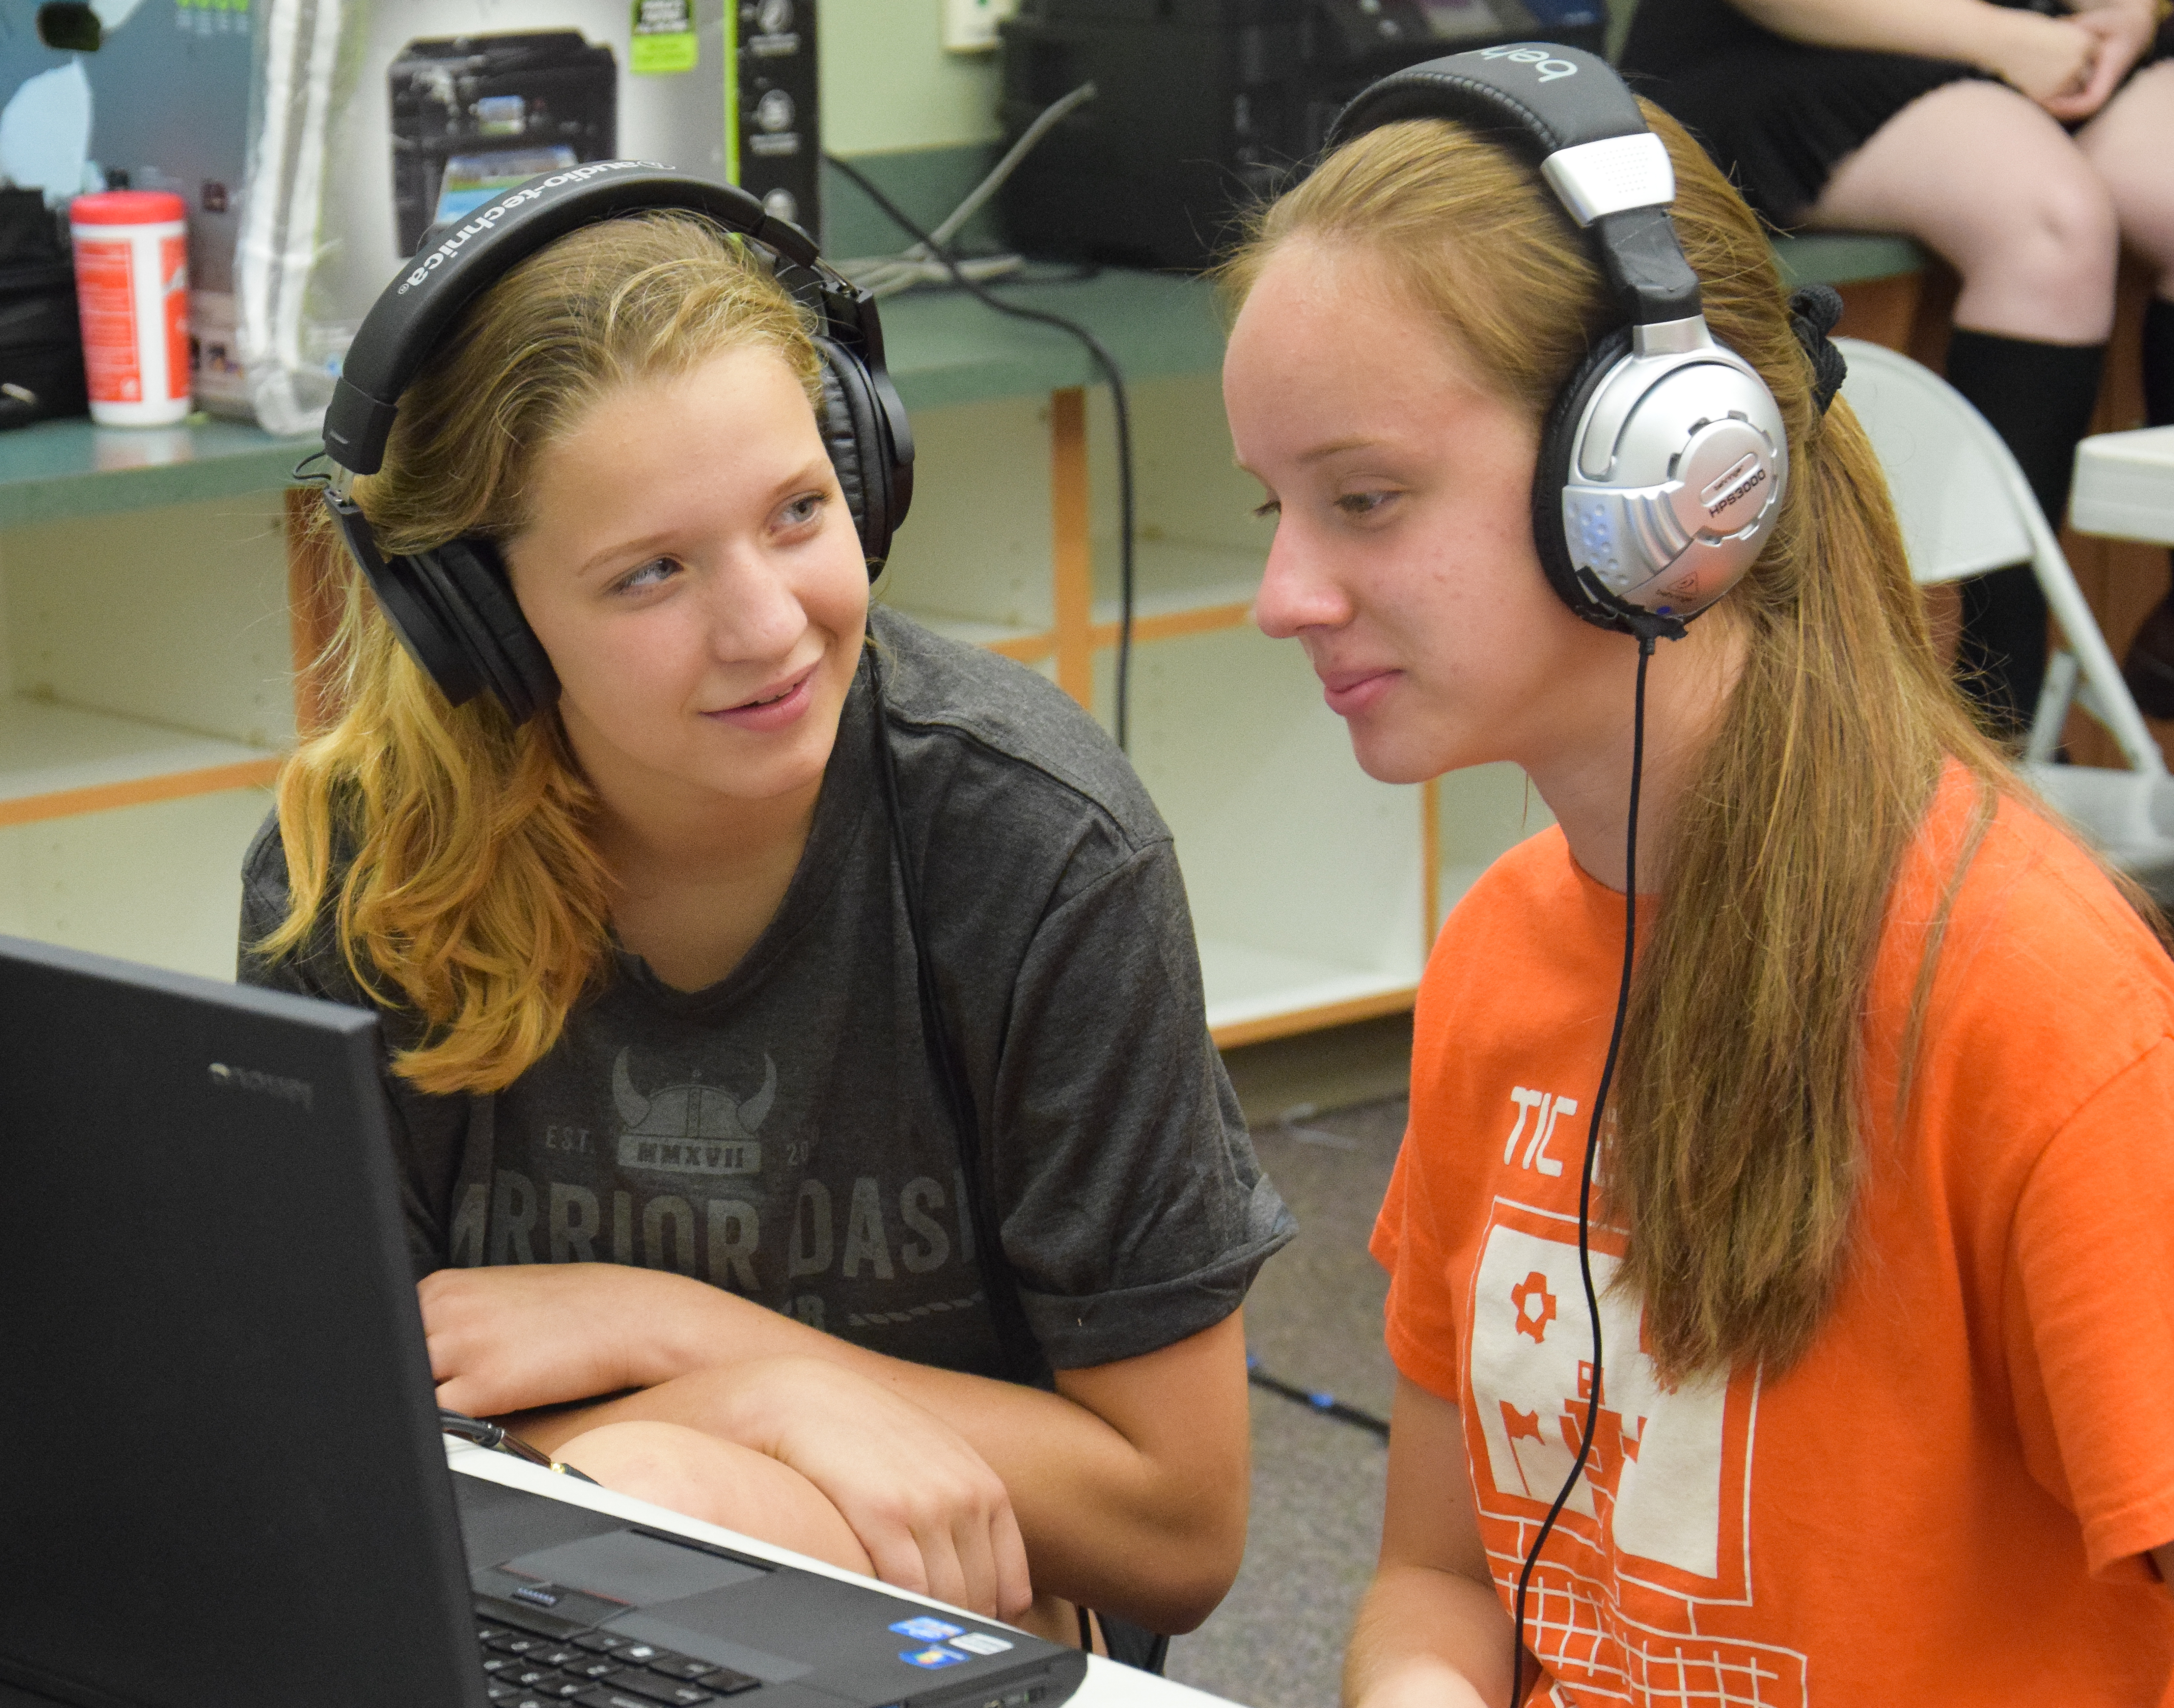 Summer Program - Video Gaming | TIC Summer Camp: McLean